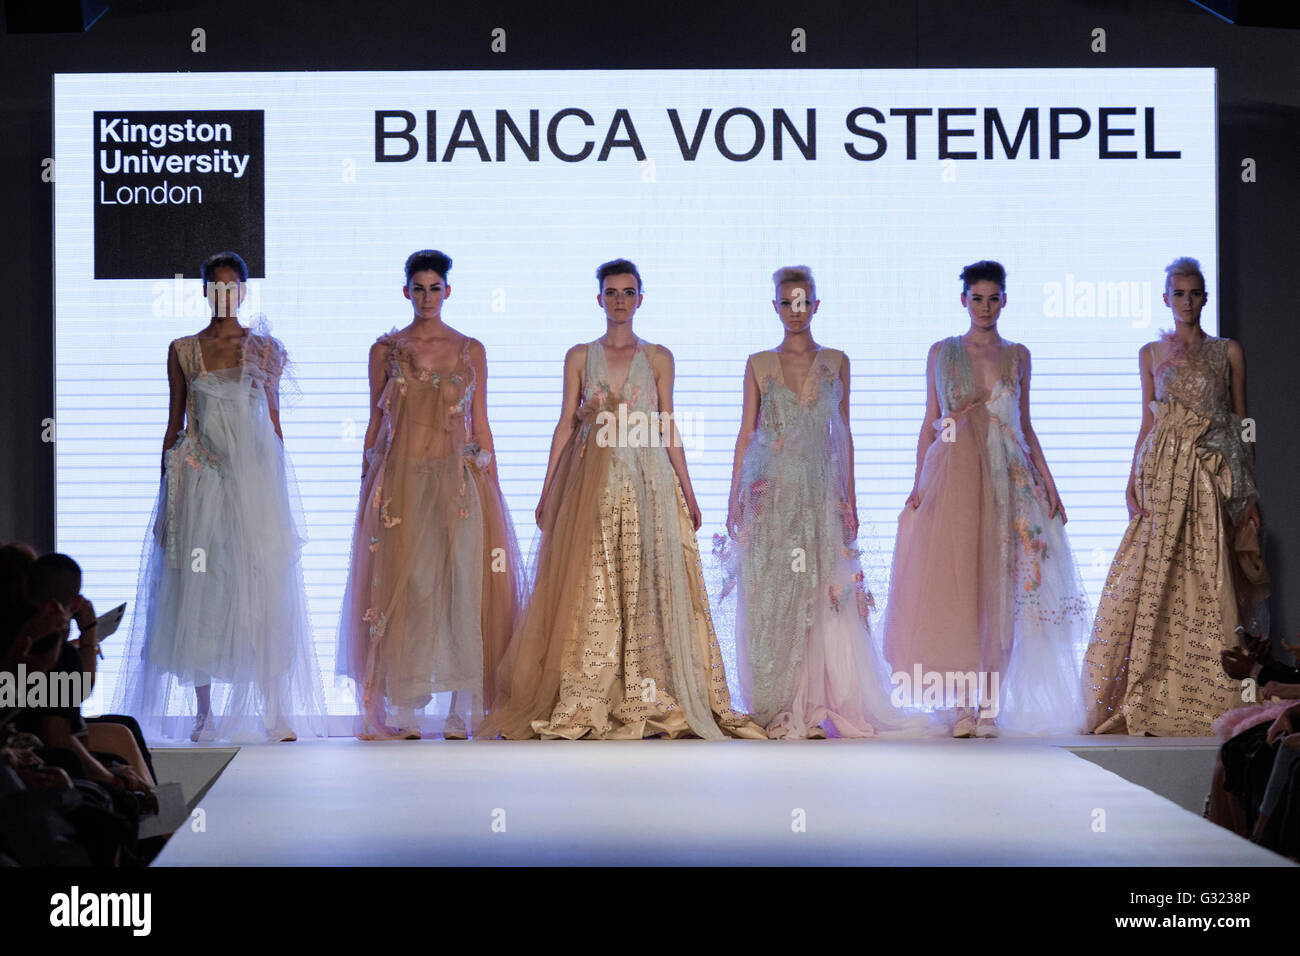 London, UK. 6 June 2016. A model walks the runway showcasing the fashion collection by Bianca Von Stempel from Kingston - Stock Image